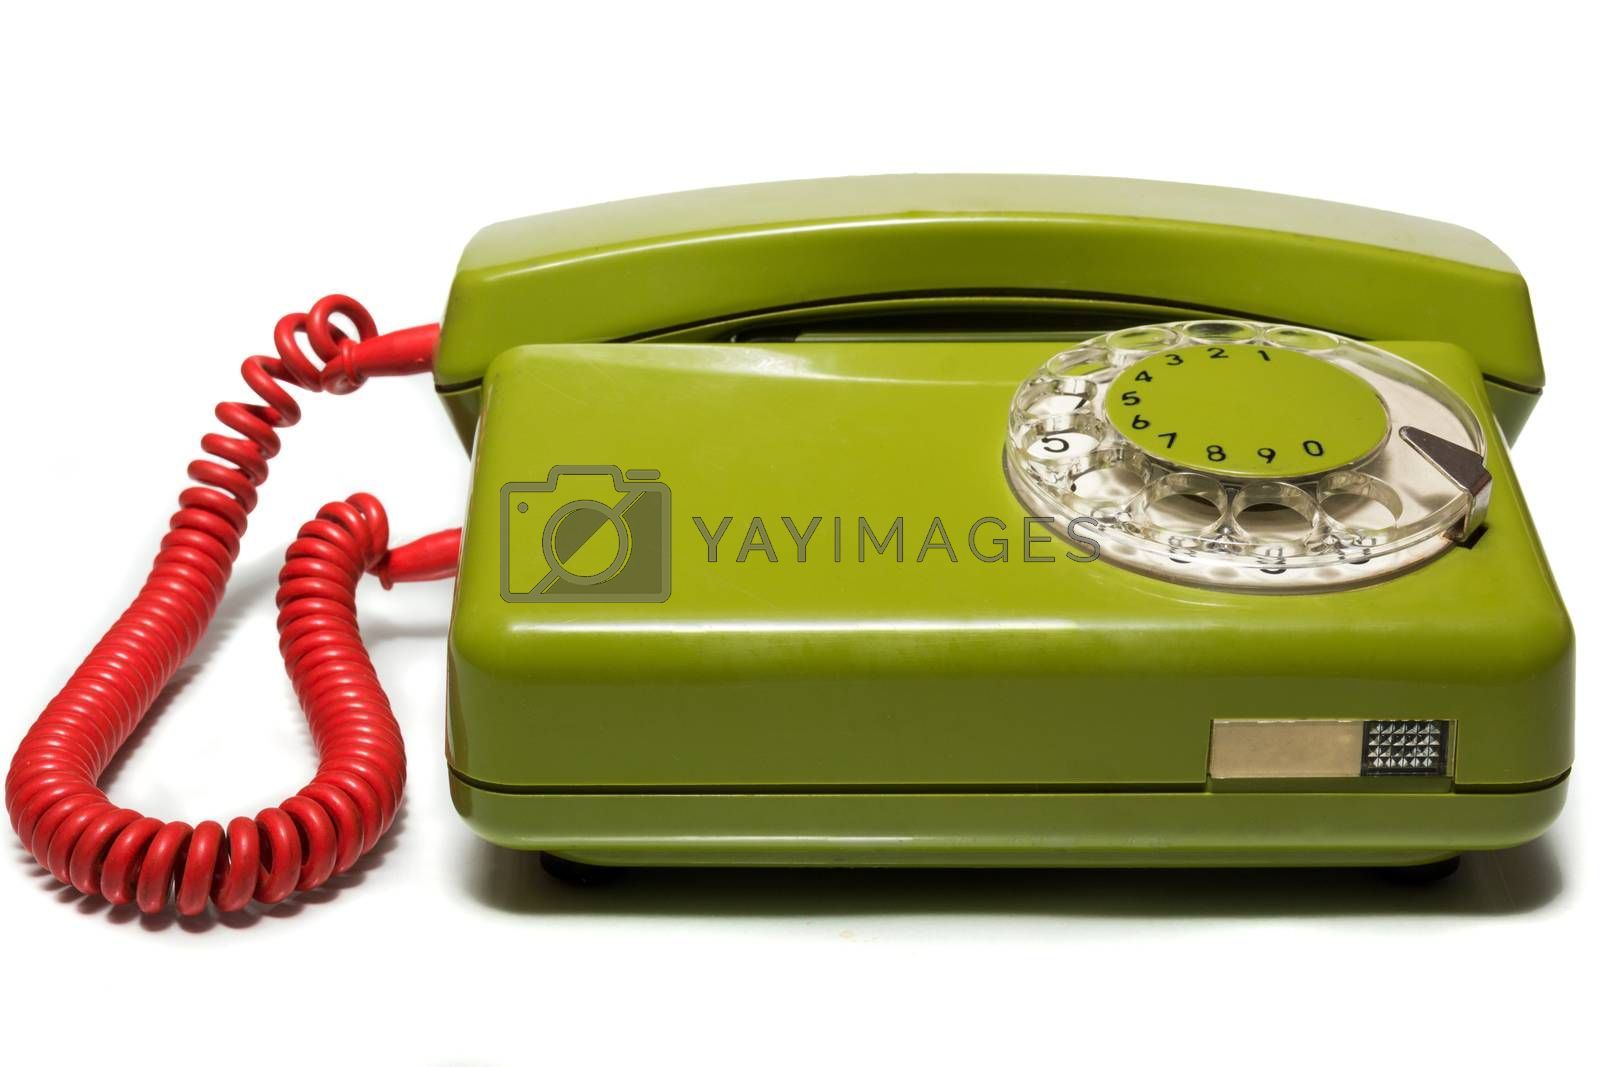 The photo depicts a mobile phone on a white background